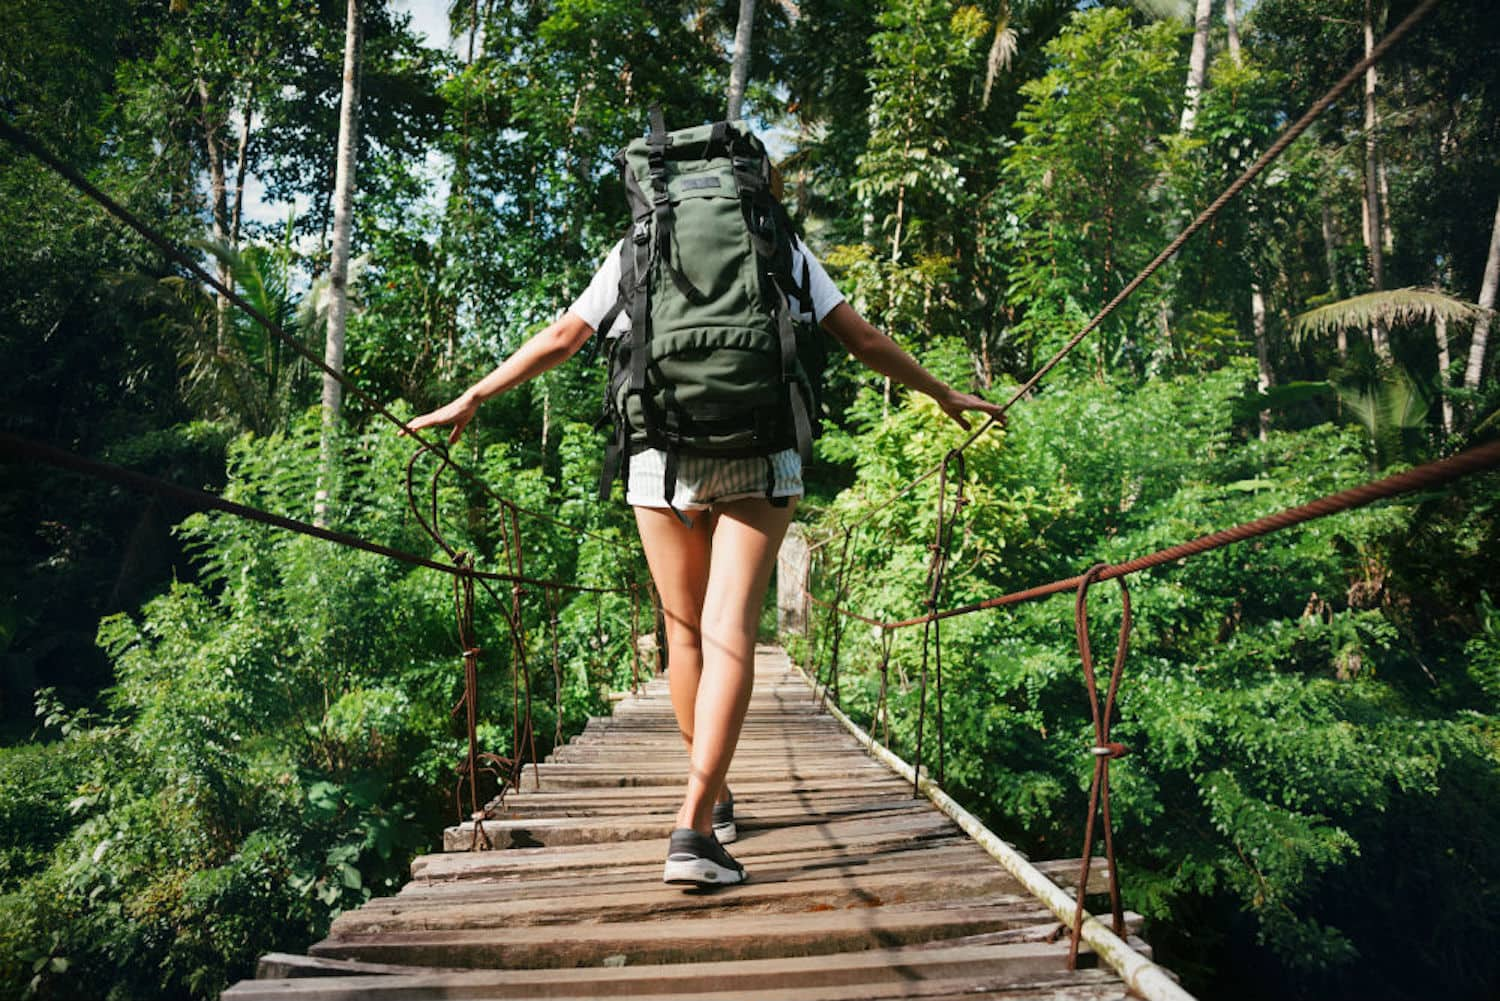 A woman going over the bridge with the backpack